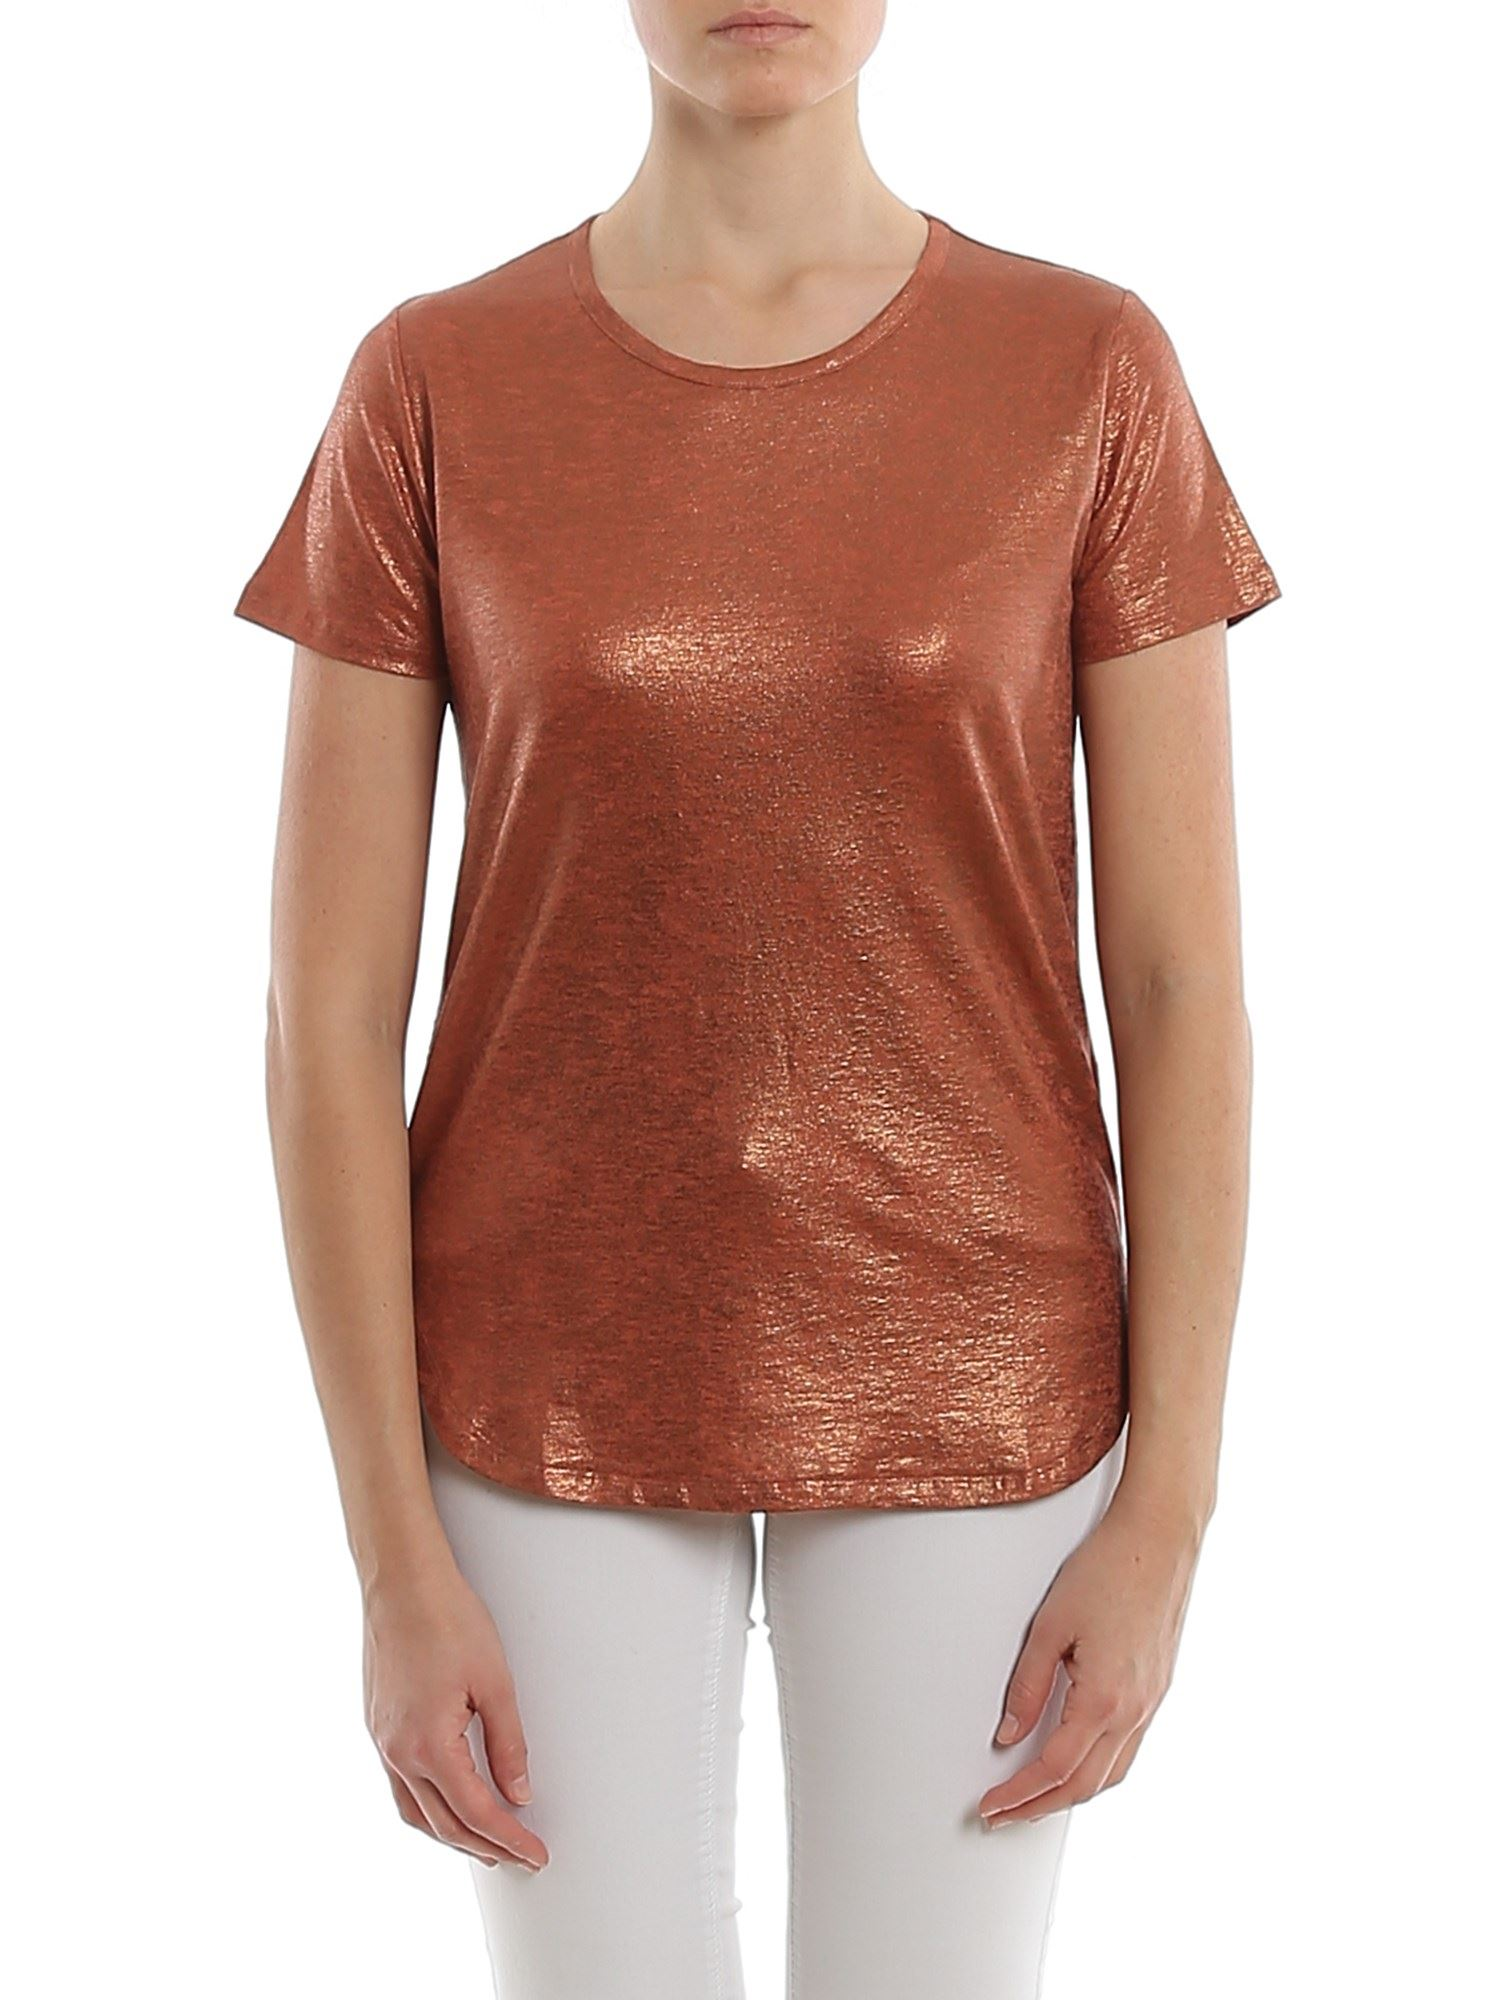 Majestic MAJESTIC FILATURES LAMINATED LINEN T-SHIRT IN ORANGE